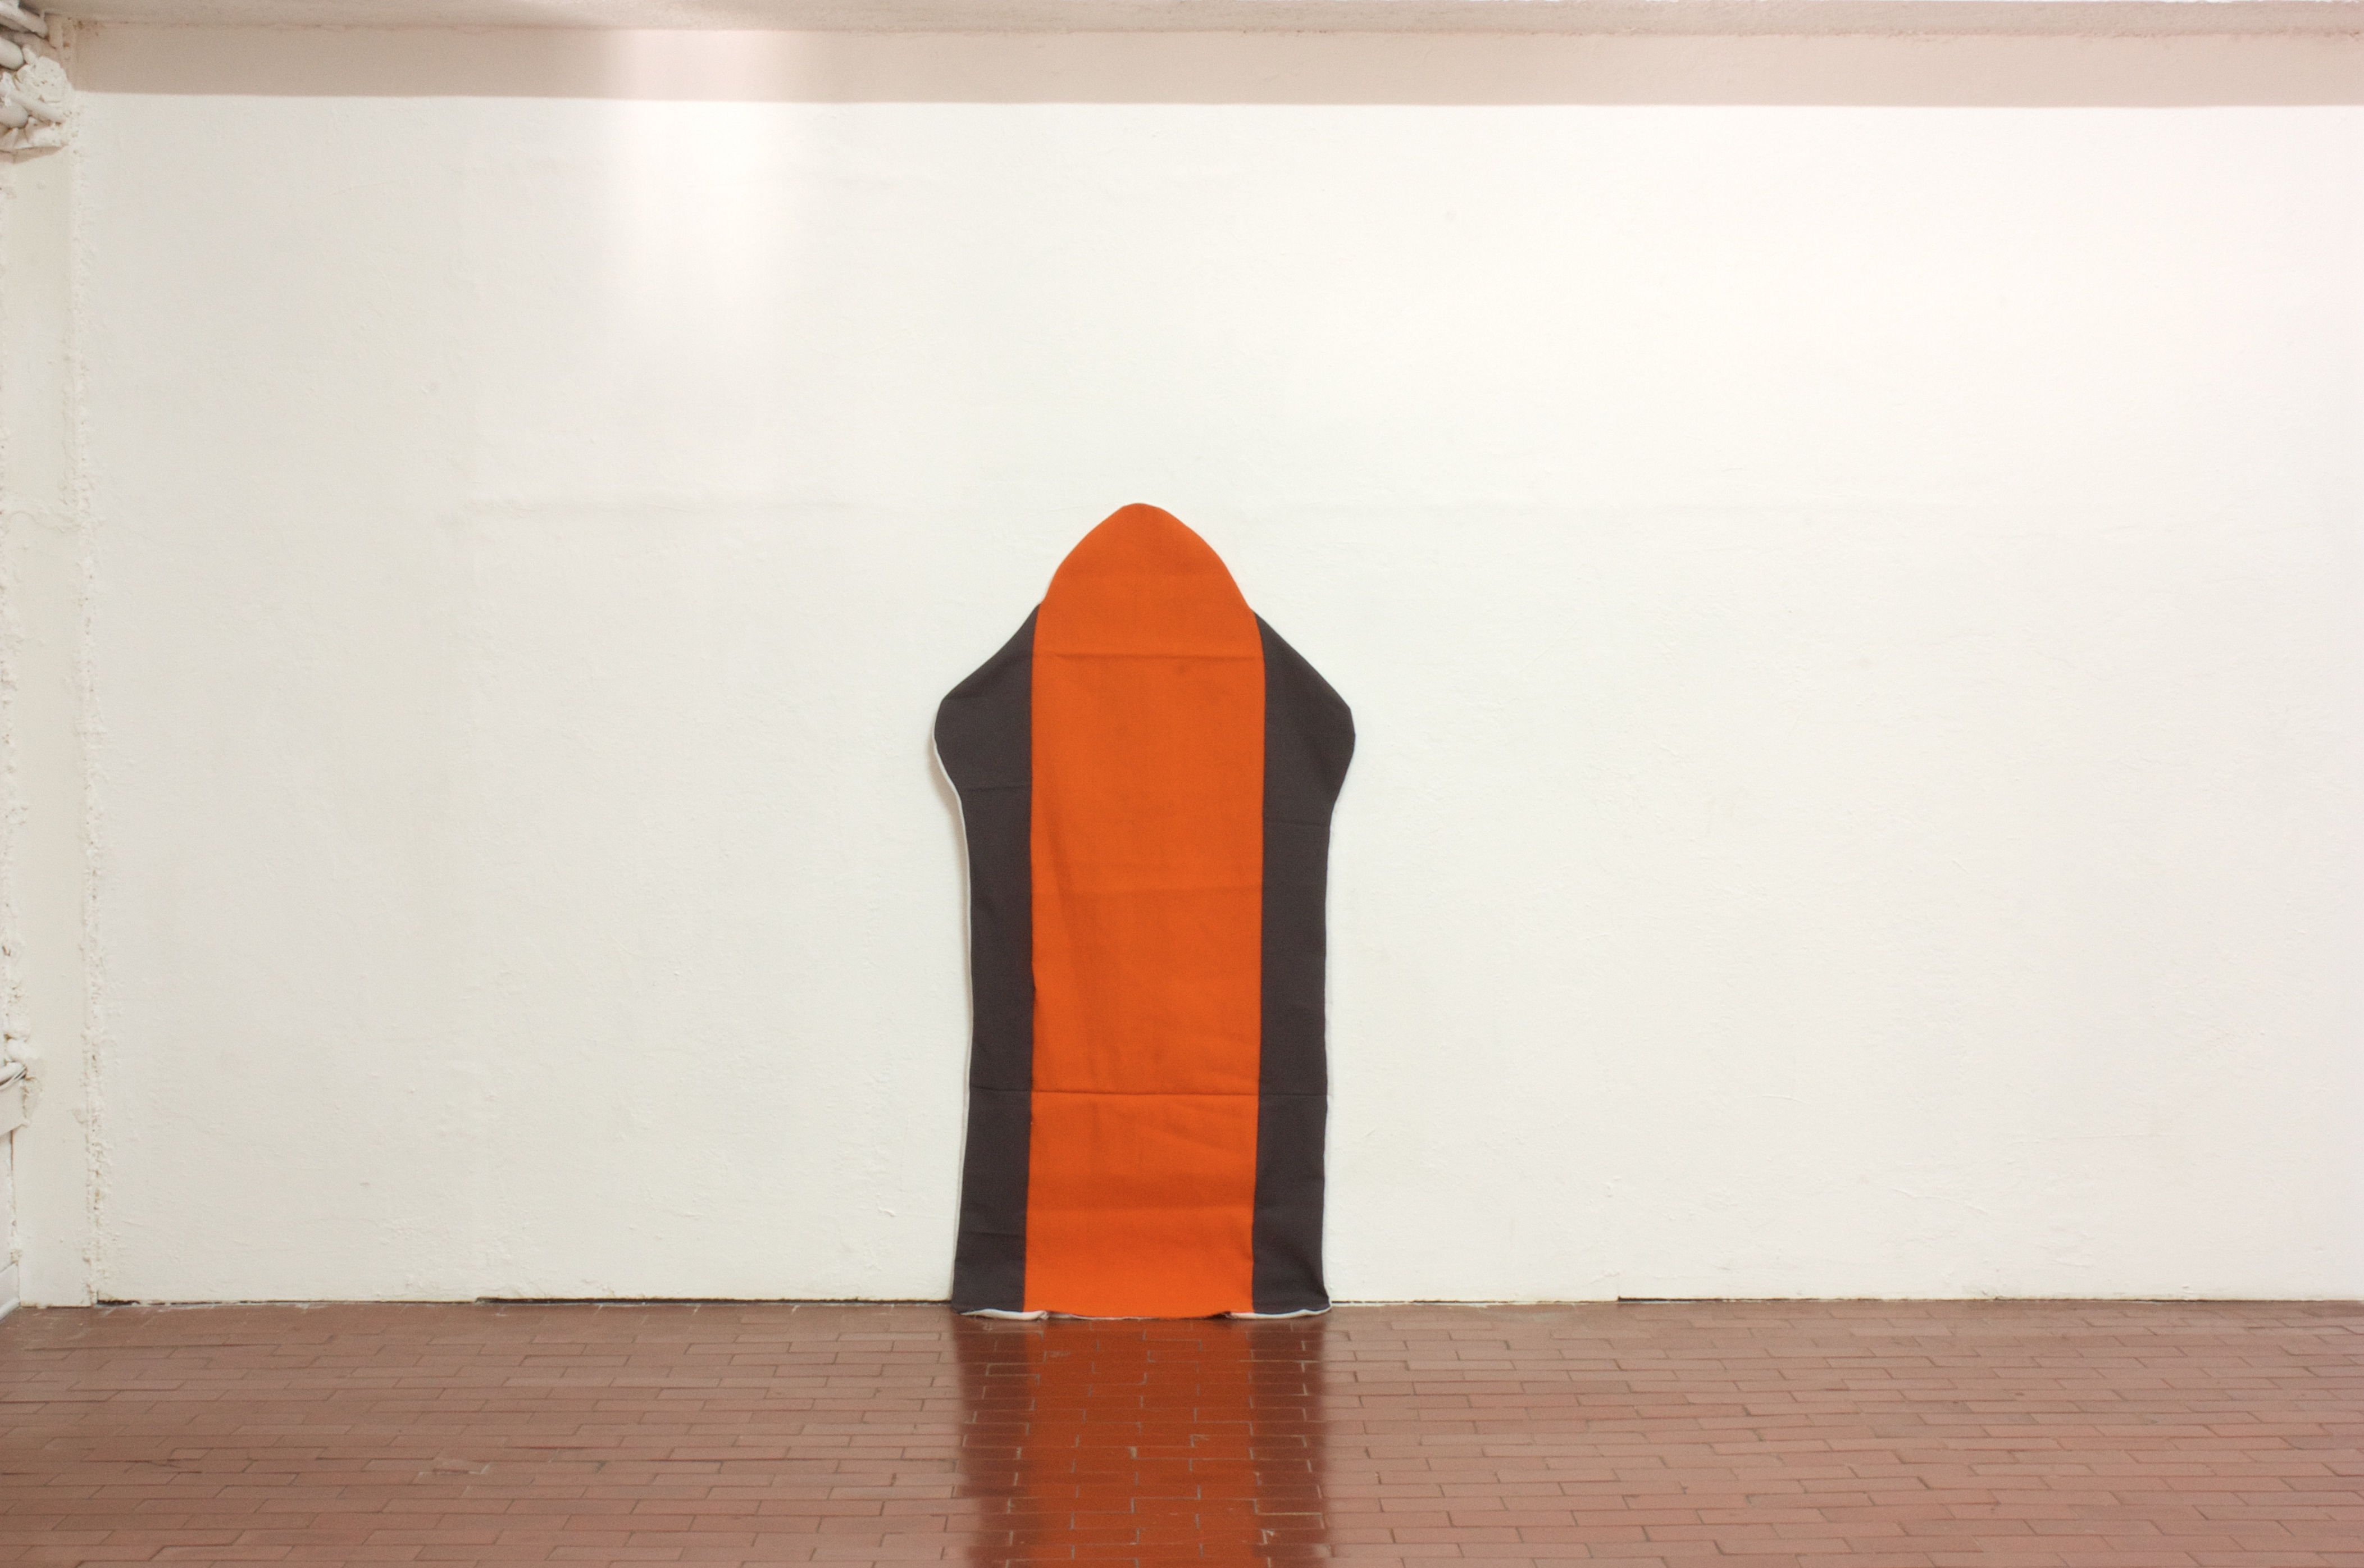 Sewn car seat upholstery, 137×67cm